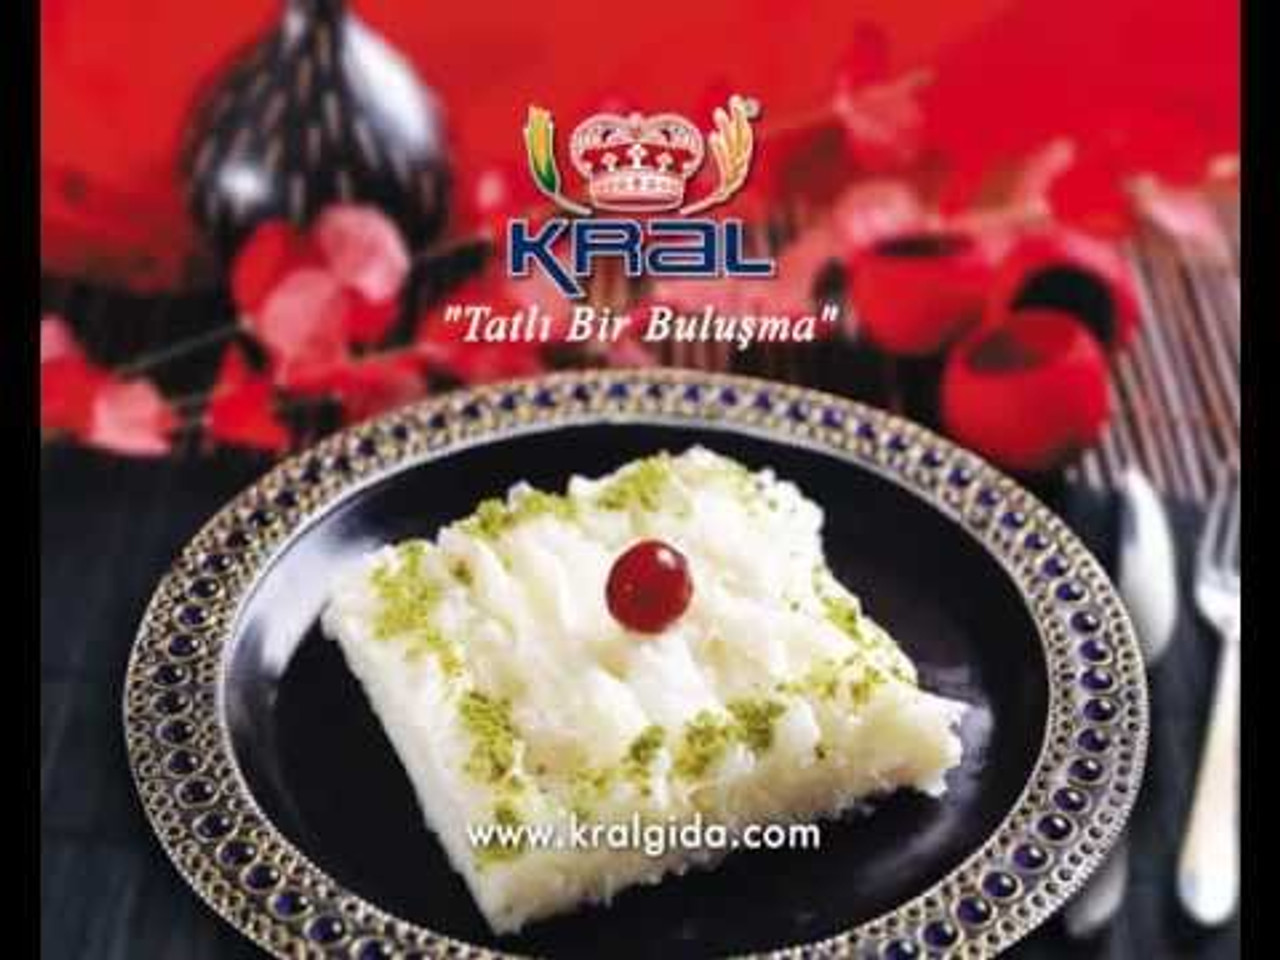 Gullac is a very thin, dry sheet of dough made of starch. It is cooked with milk and sugar and a traditional desert of Ramadan month served after fasting